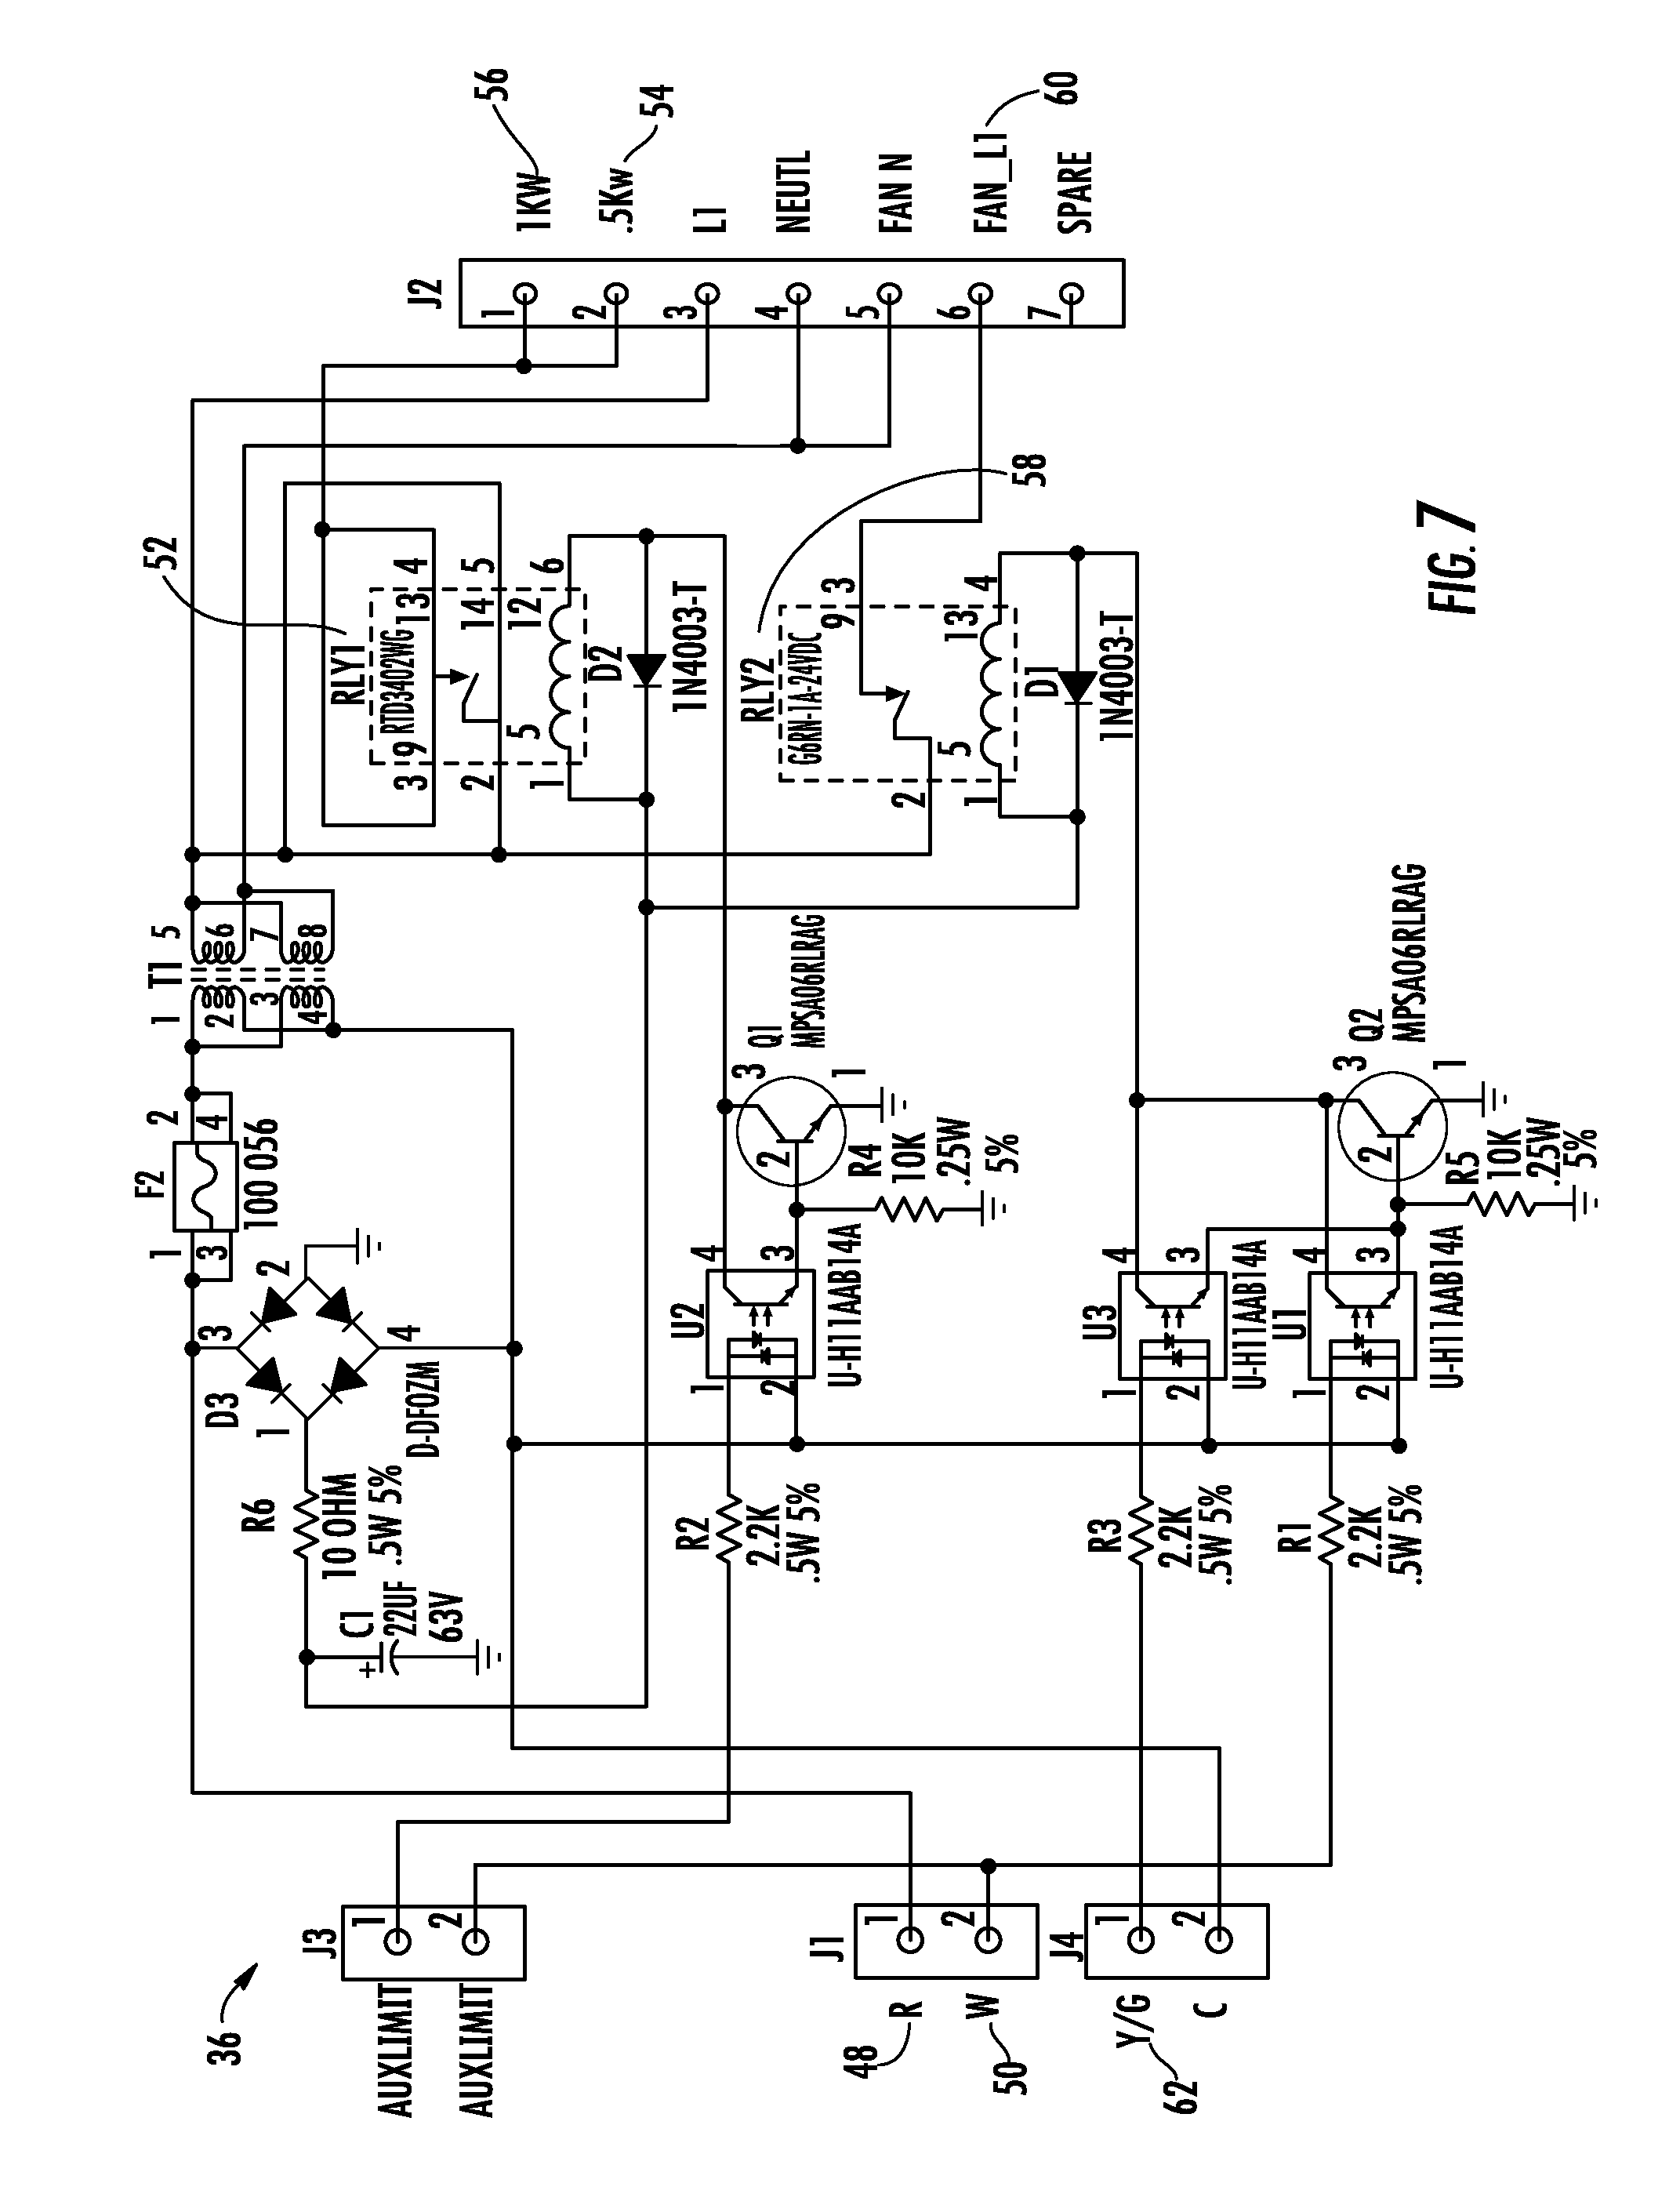 Honeywell Chronotherm Iv Plus Wiring Diagram 44 Th6000 Thermostat Wire Us08837922 20140916 D00007 Patent Us8837922 In Line Duct Supplemental Heating And Cooling